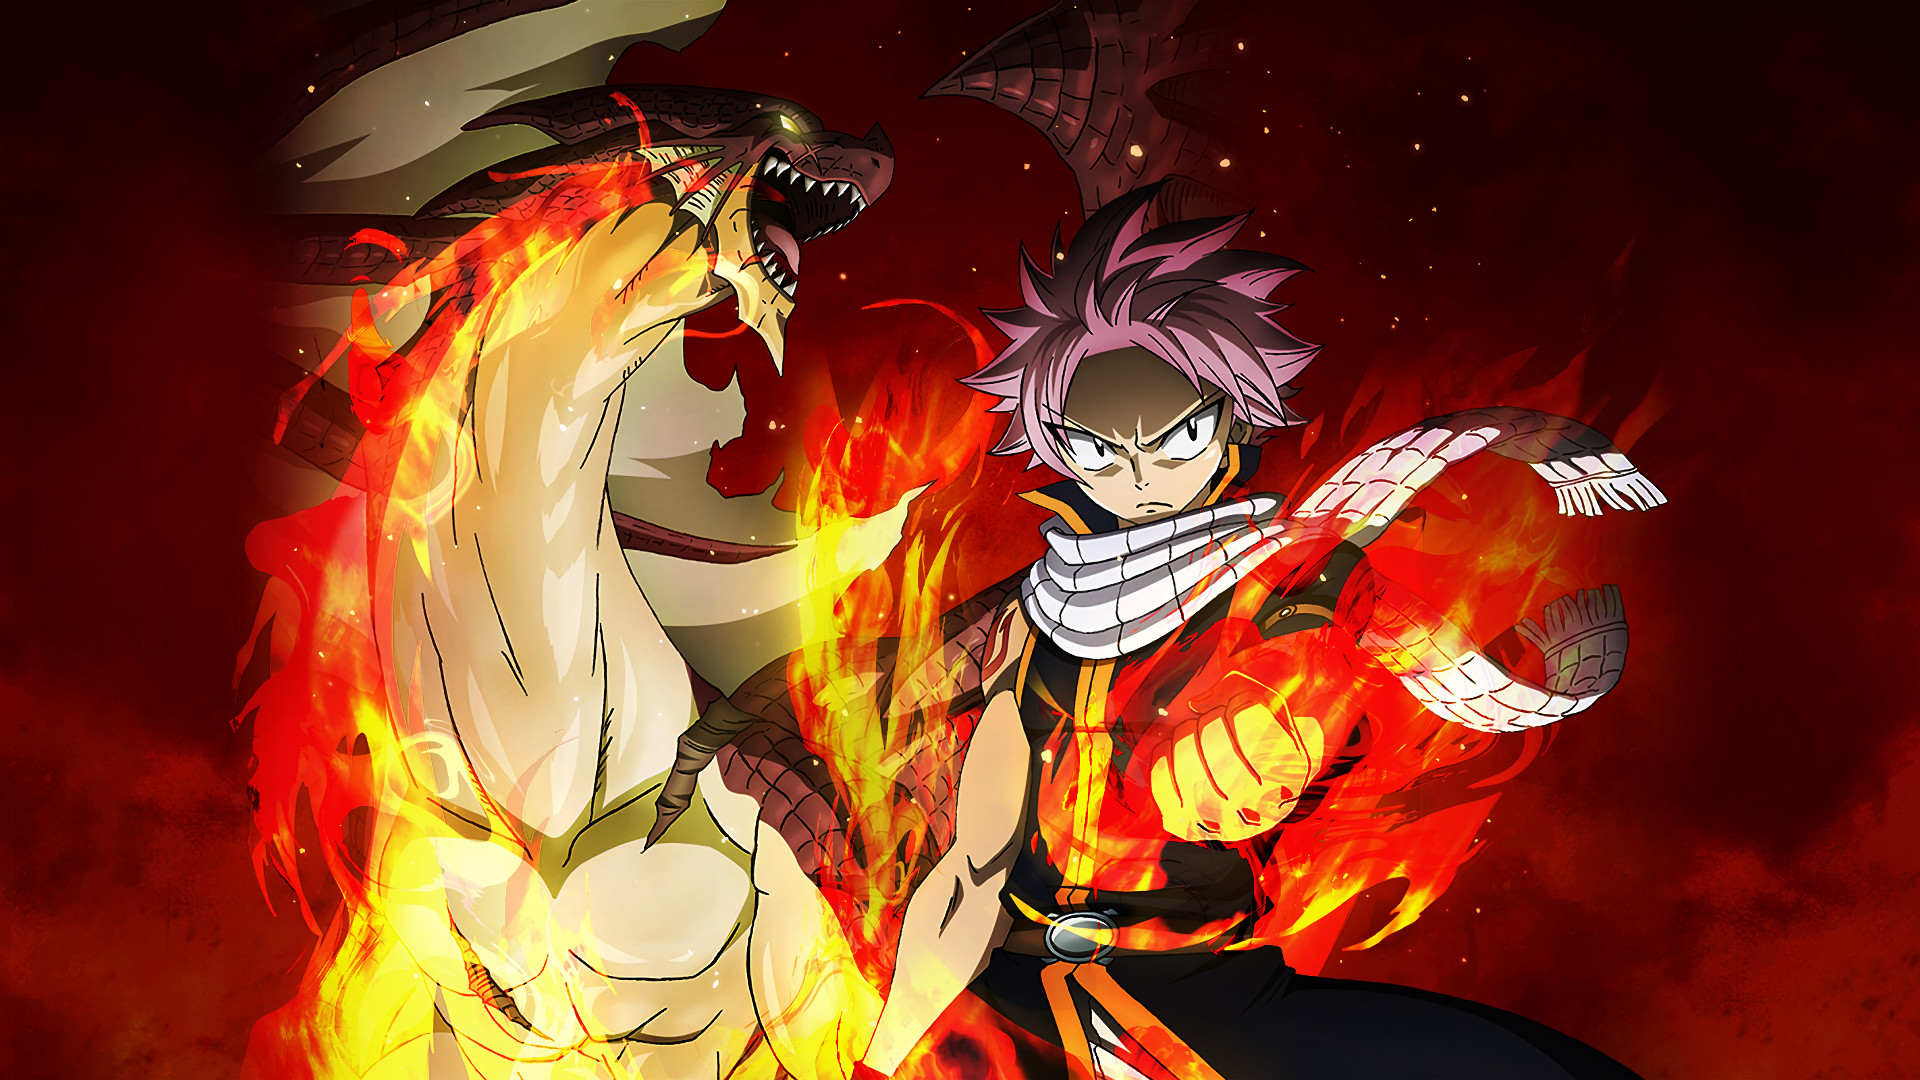 Fairy tail wallpapers 81 images - Image de natsu fairy tail ...